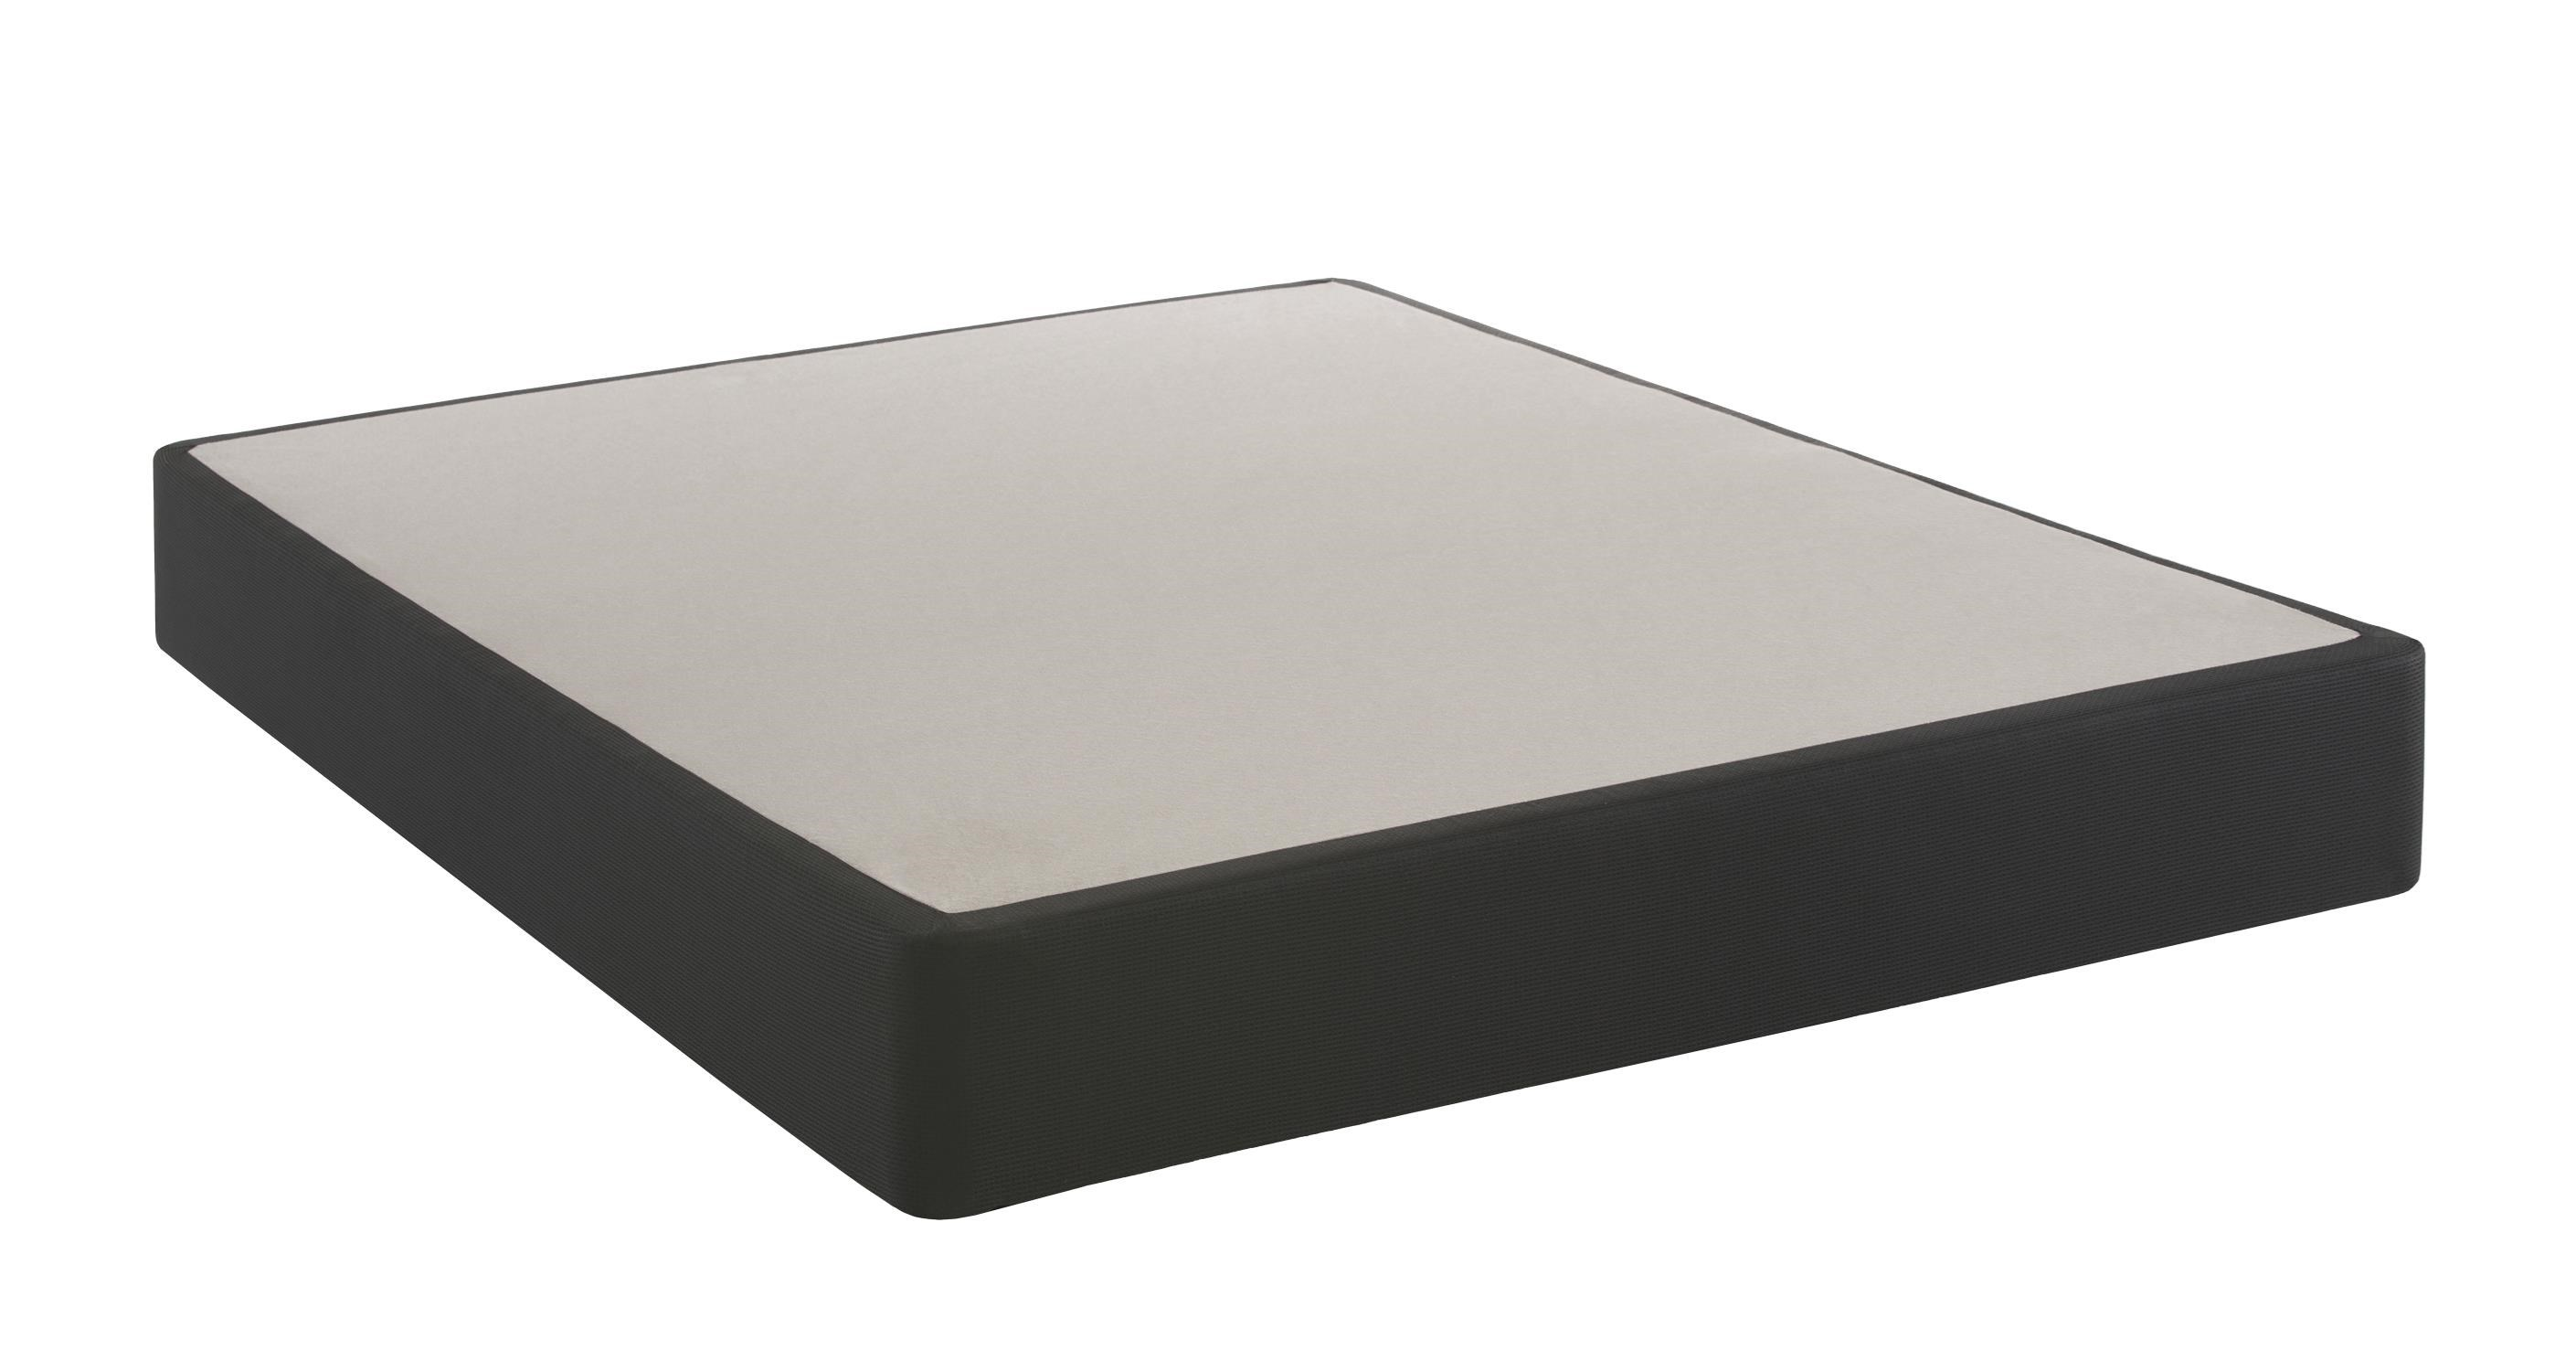 """2017 StableSupport Foundations Full Low Profile Base 5"""" Height by Sealy at Morris Home"""